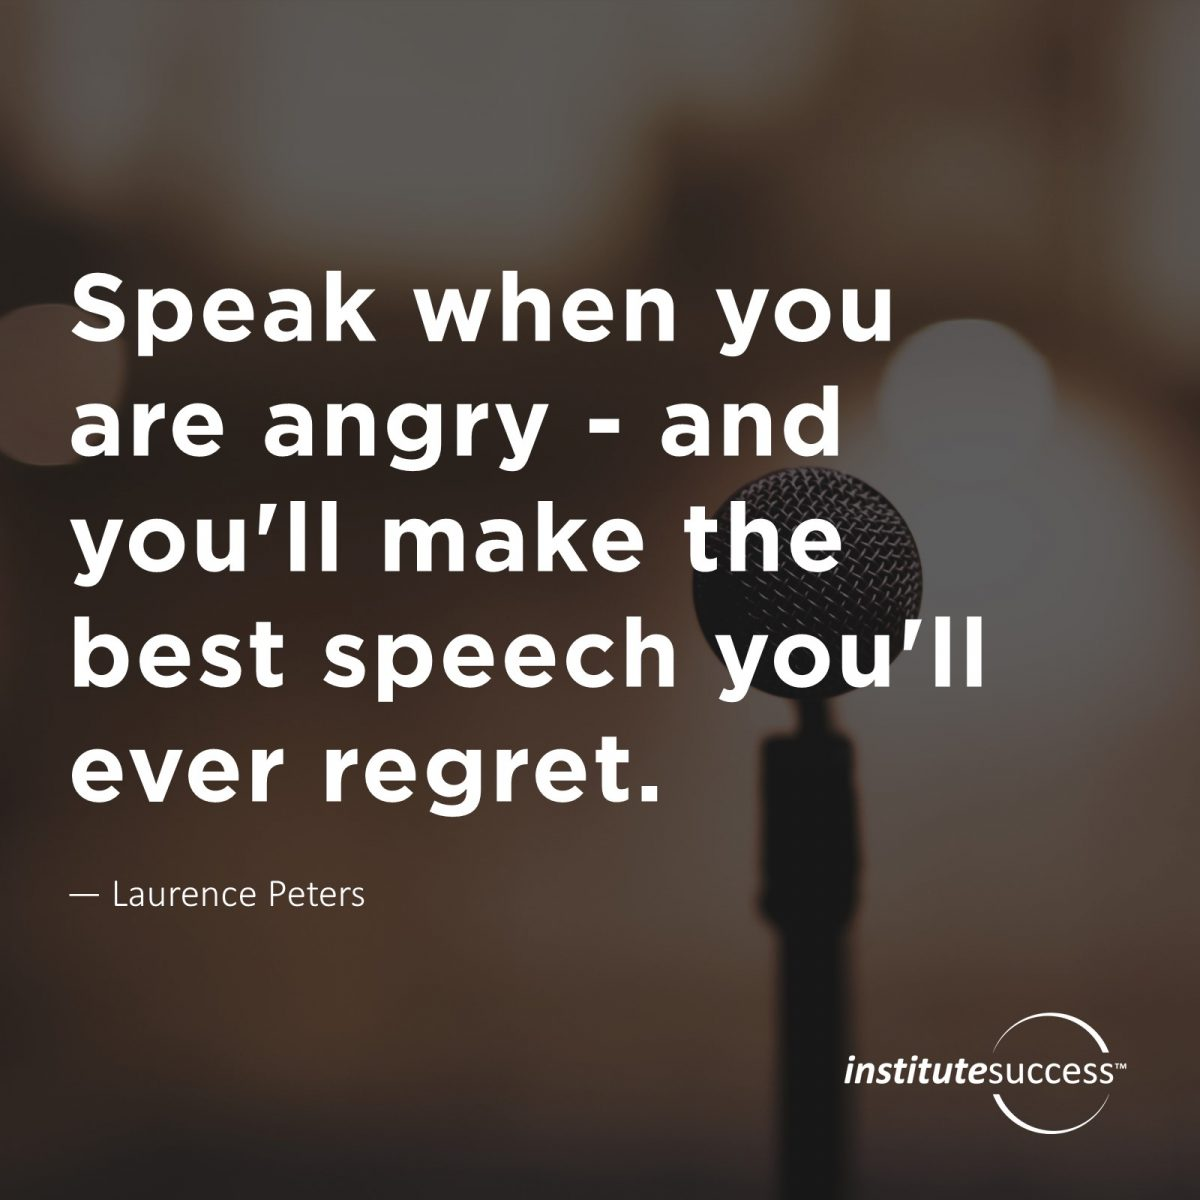 Speak when you are angry — and you'll make the best speech you'll ever regret. – Laurence Peters